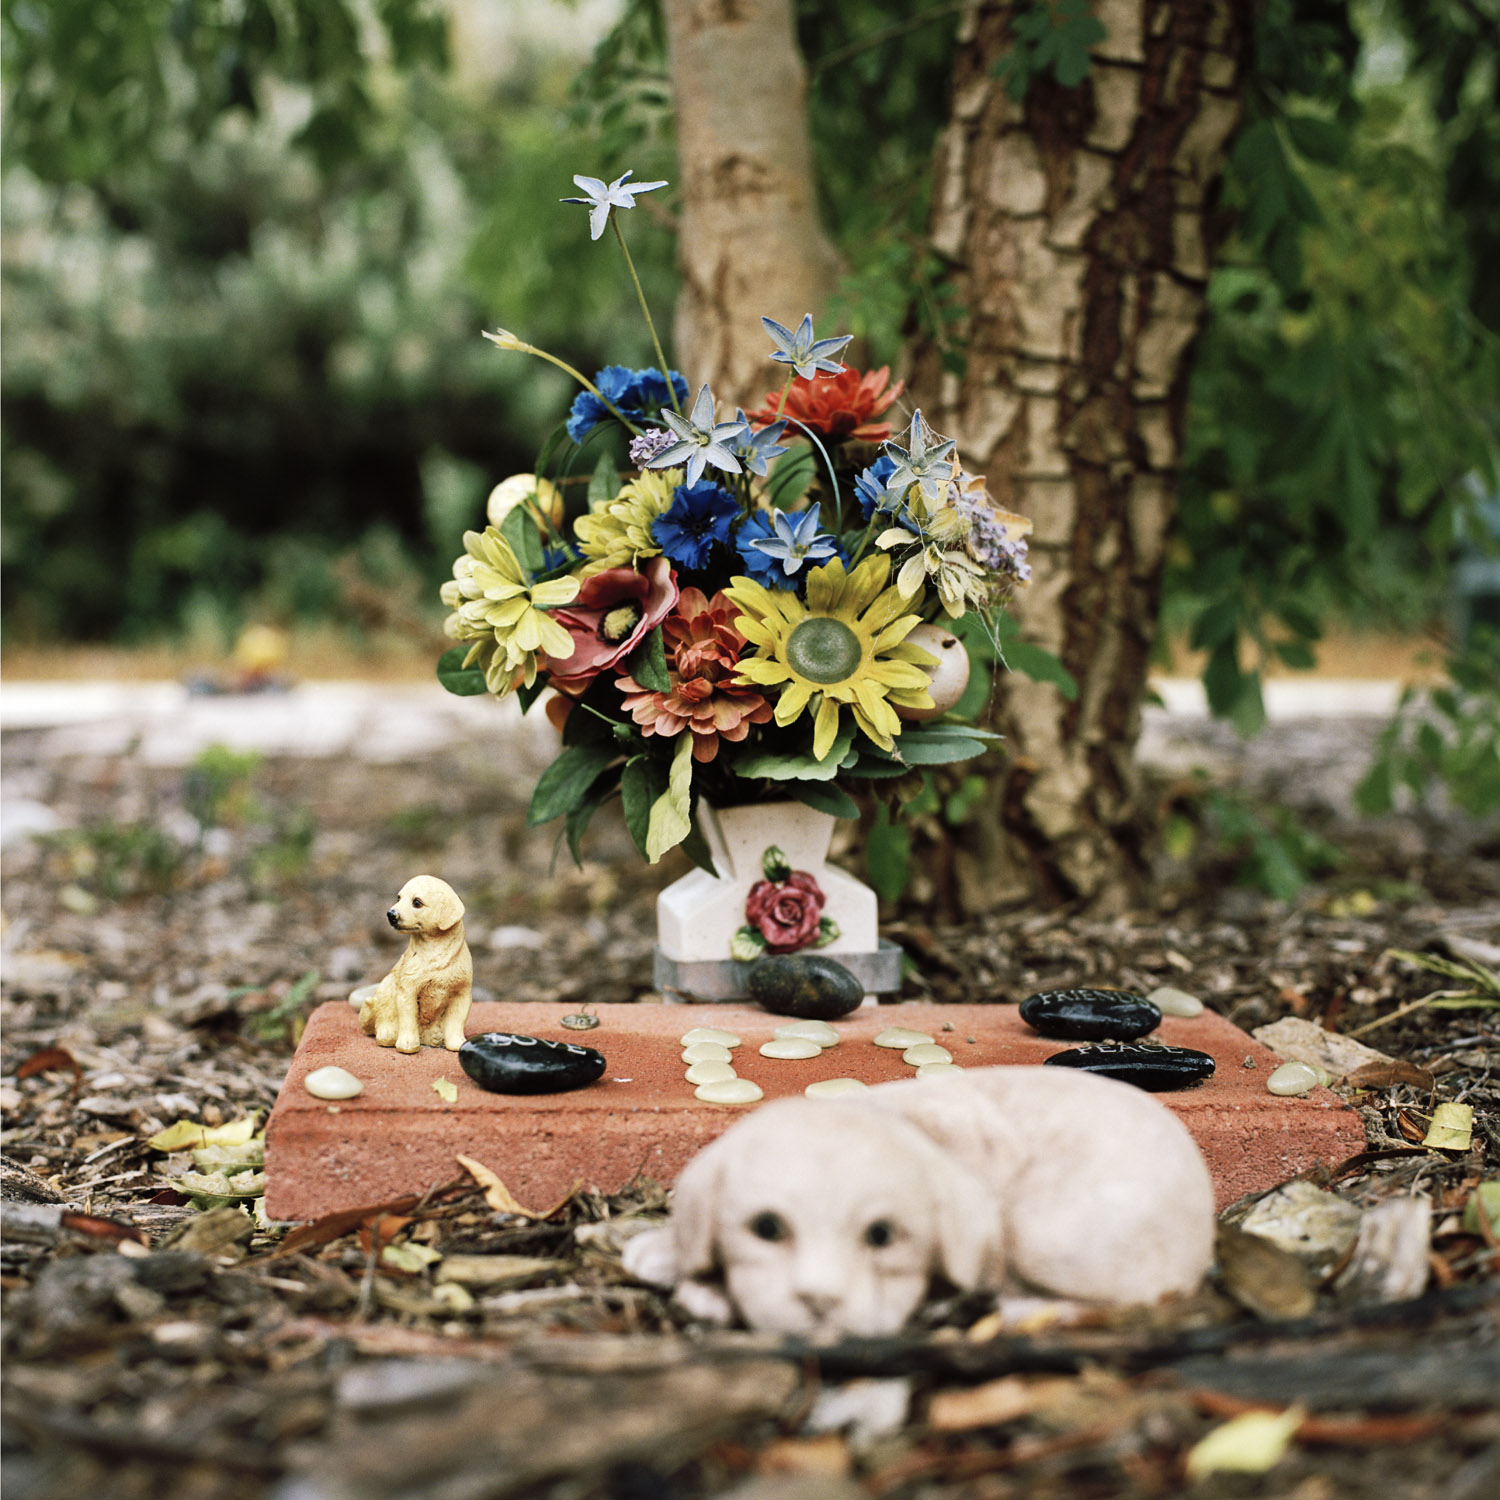 Puppy Grave, 2010, from the series Touchstones by Abby Storey.